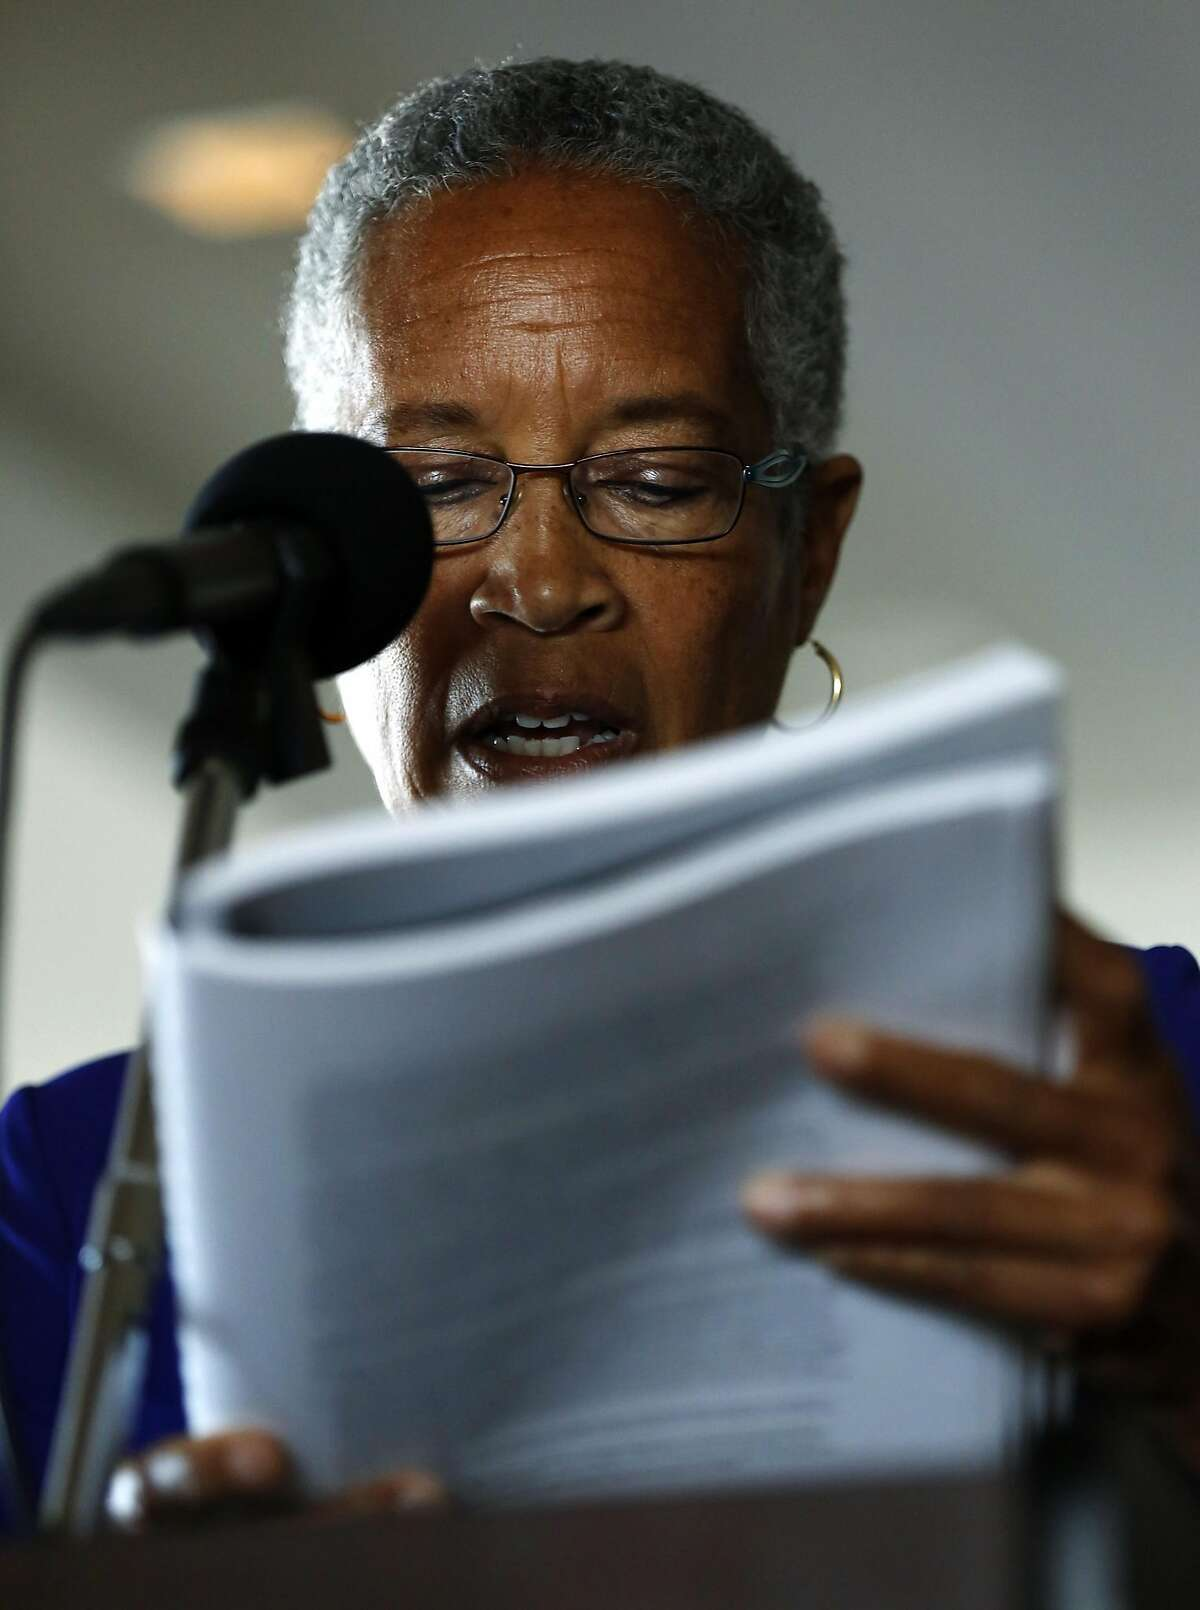 The Hon. LaDoris Cordell reads from a copy of the Blue Ribbon Panel's report on the San Francisco Police Conference at a press conference announcing its release in San Francisco, California, on Monday, July 11, 2016.